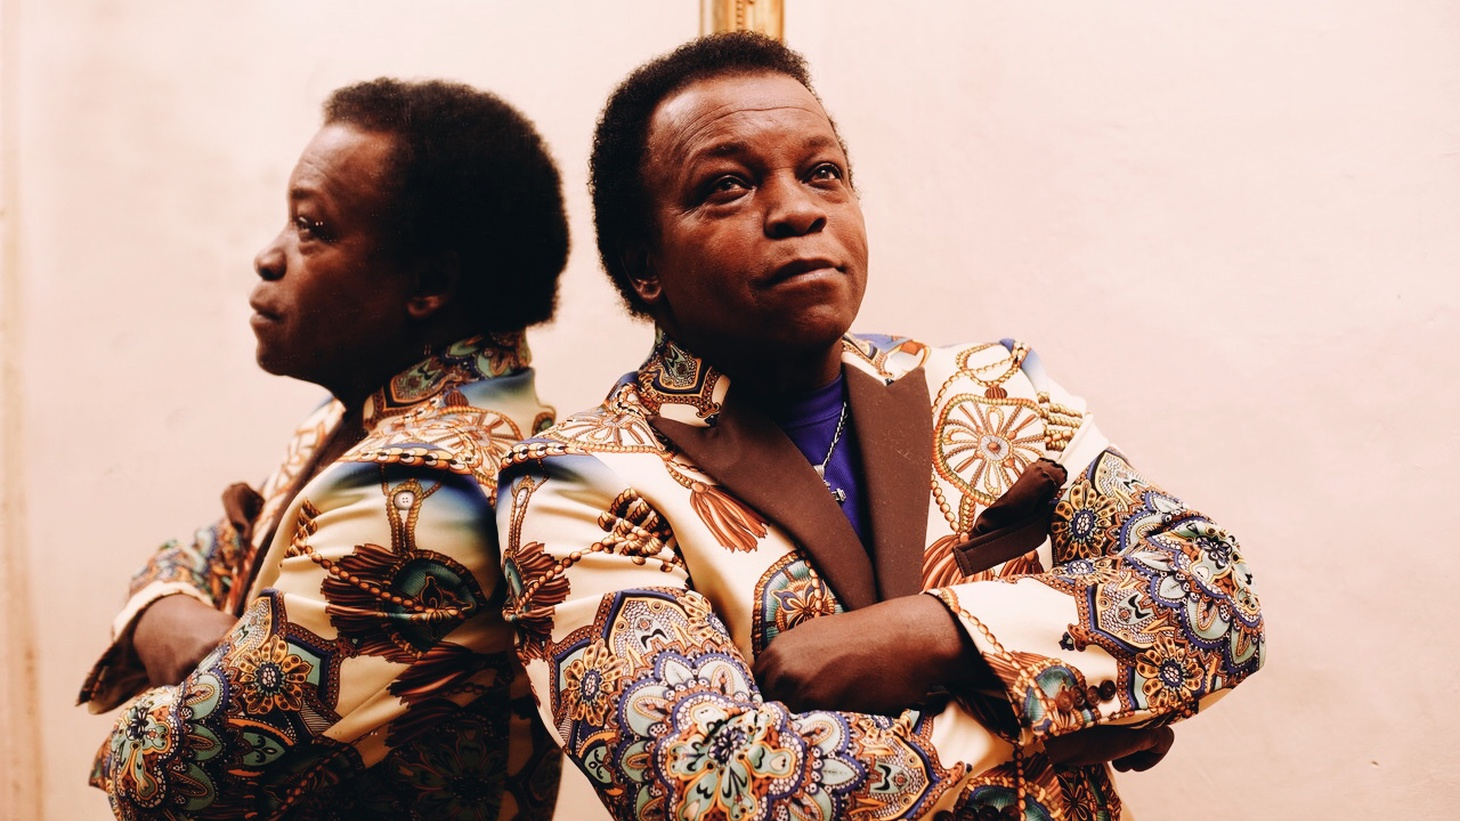 Lee Fields has worked with Kool & The Gang, B.B. King and Bobby Womack to name a few.